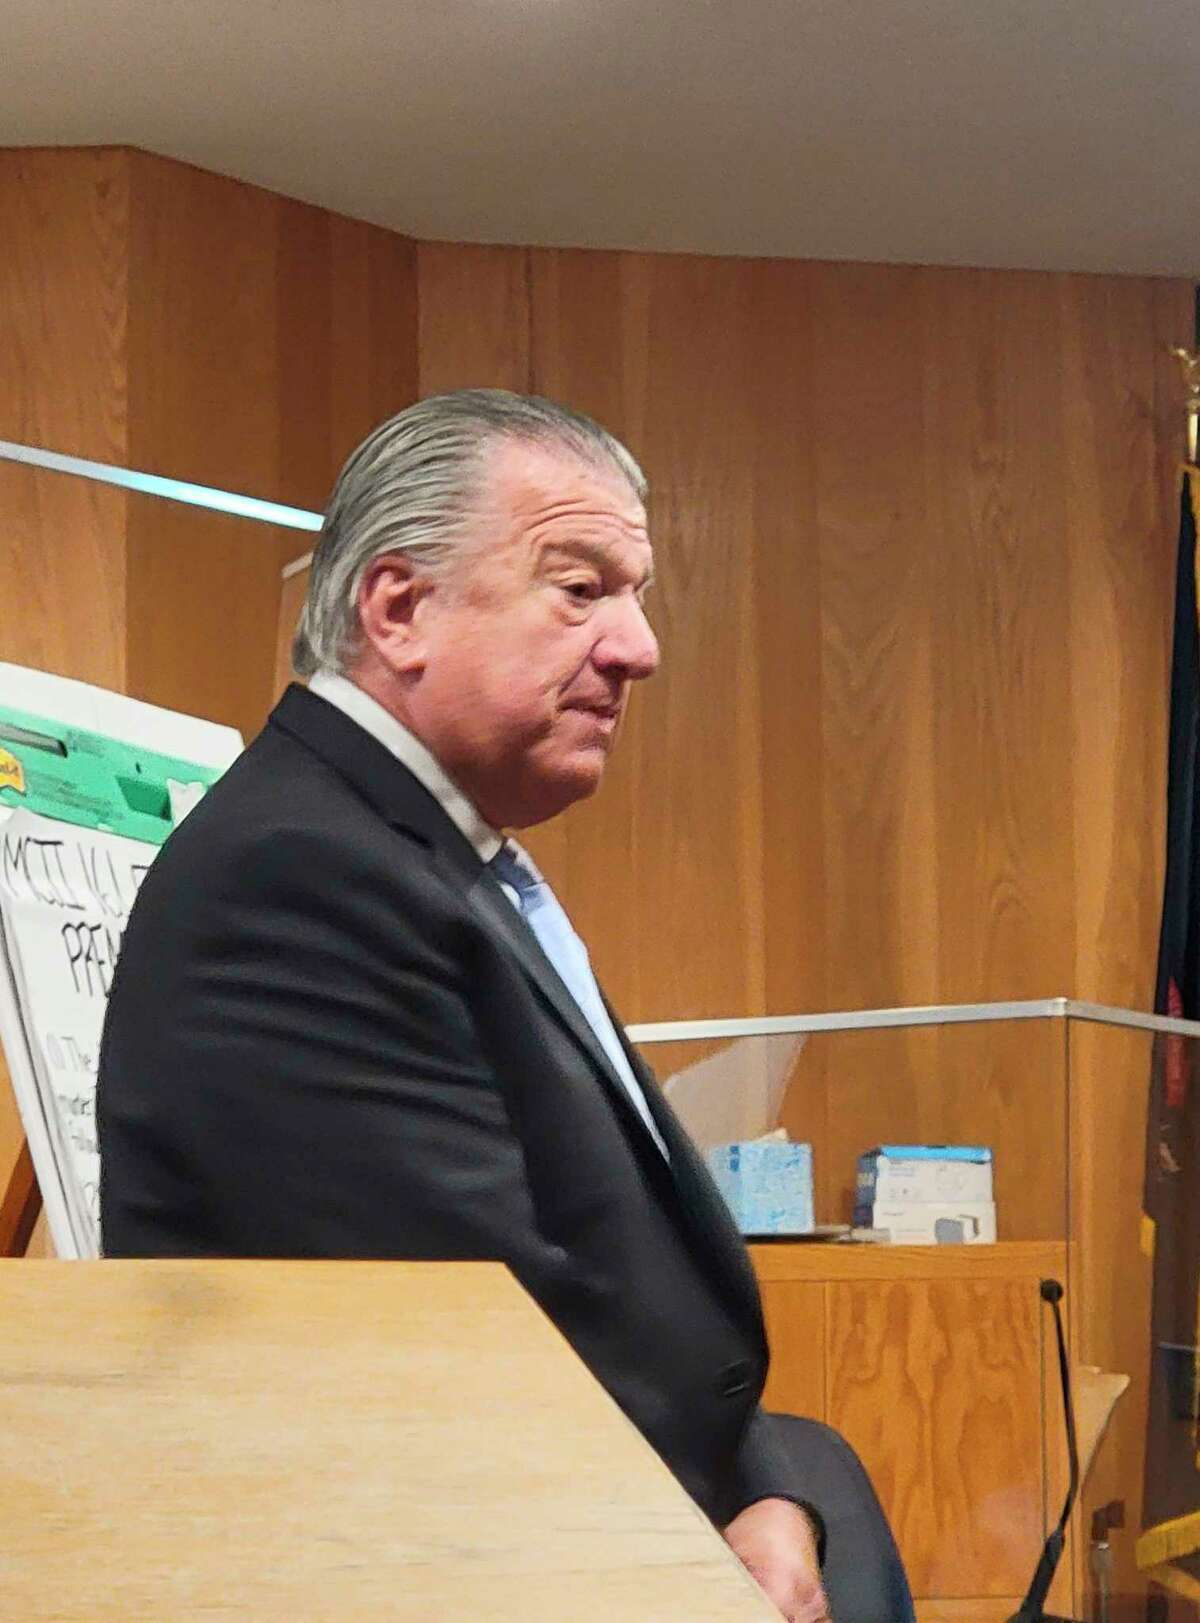 During a trial in Benzie County's 19th Circuit Court,efense attorney Craig Elhart argues that his client, Taylor Manol, did not have any intent to kill his neighbor,Alexander Sarantos, and therefore not guilty offirstor second degree murder. (Colin Merry/Record Patriot)